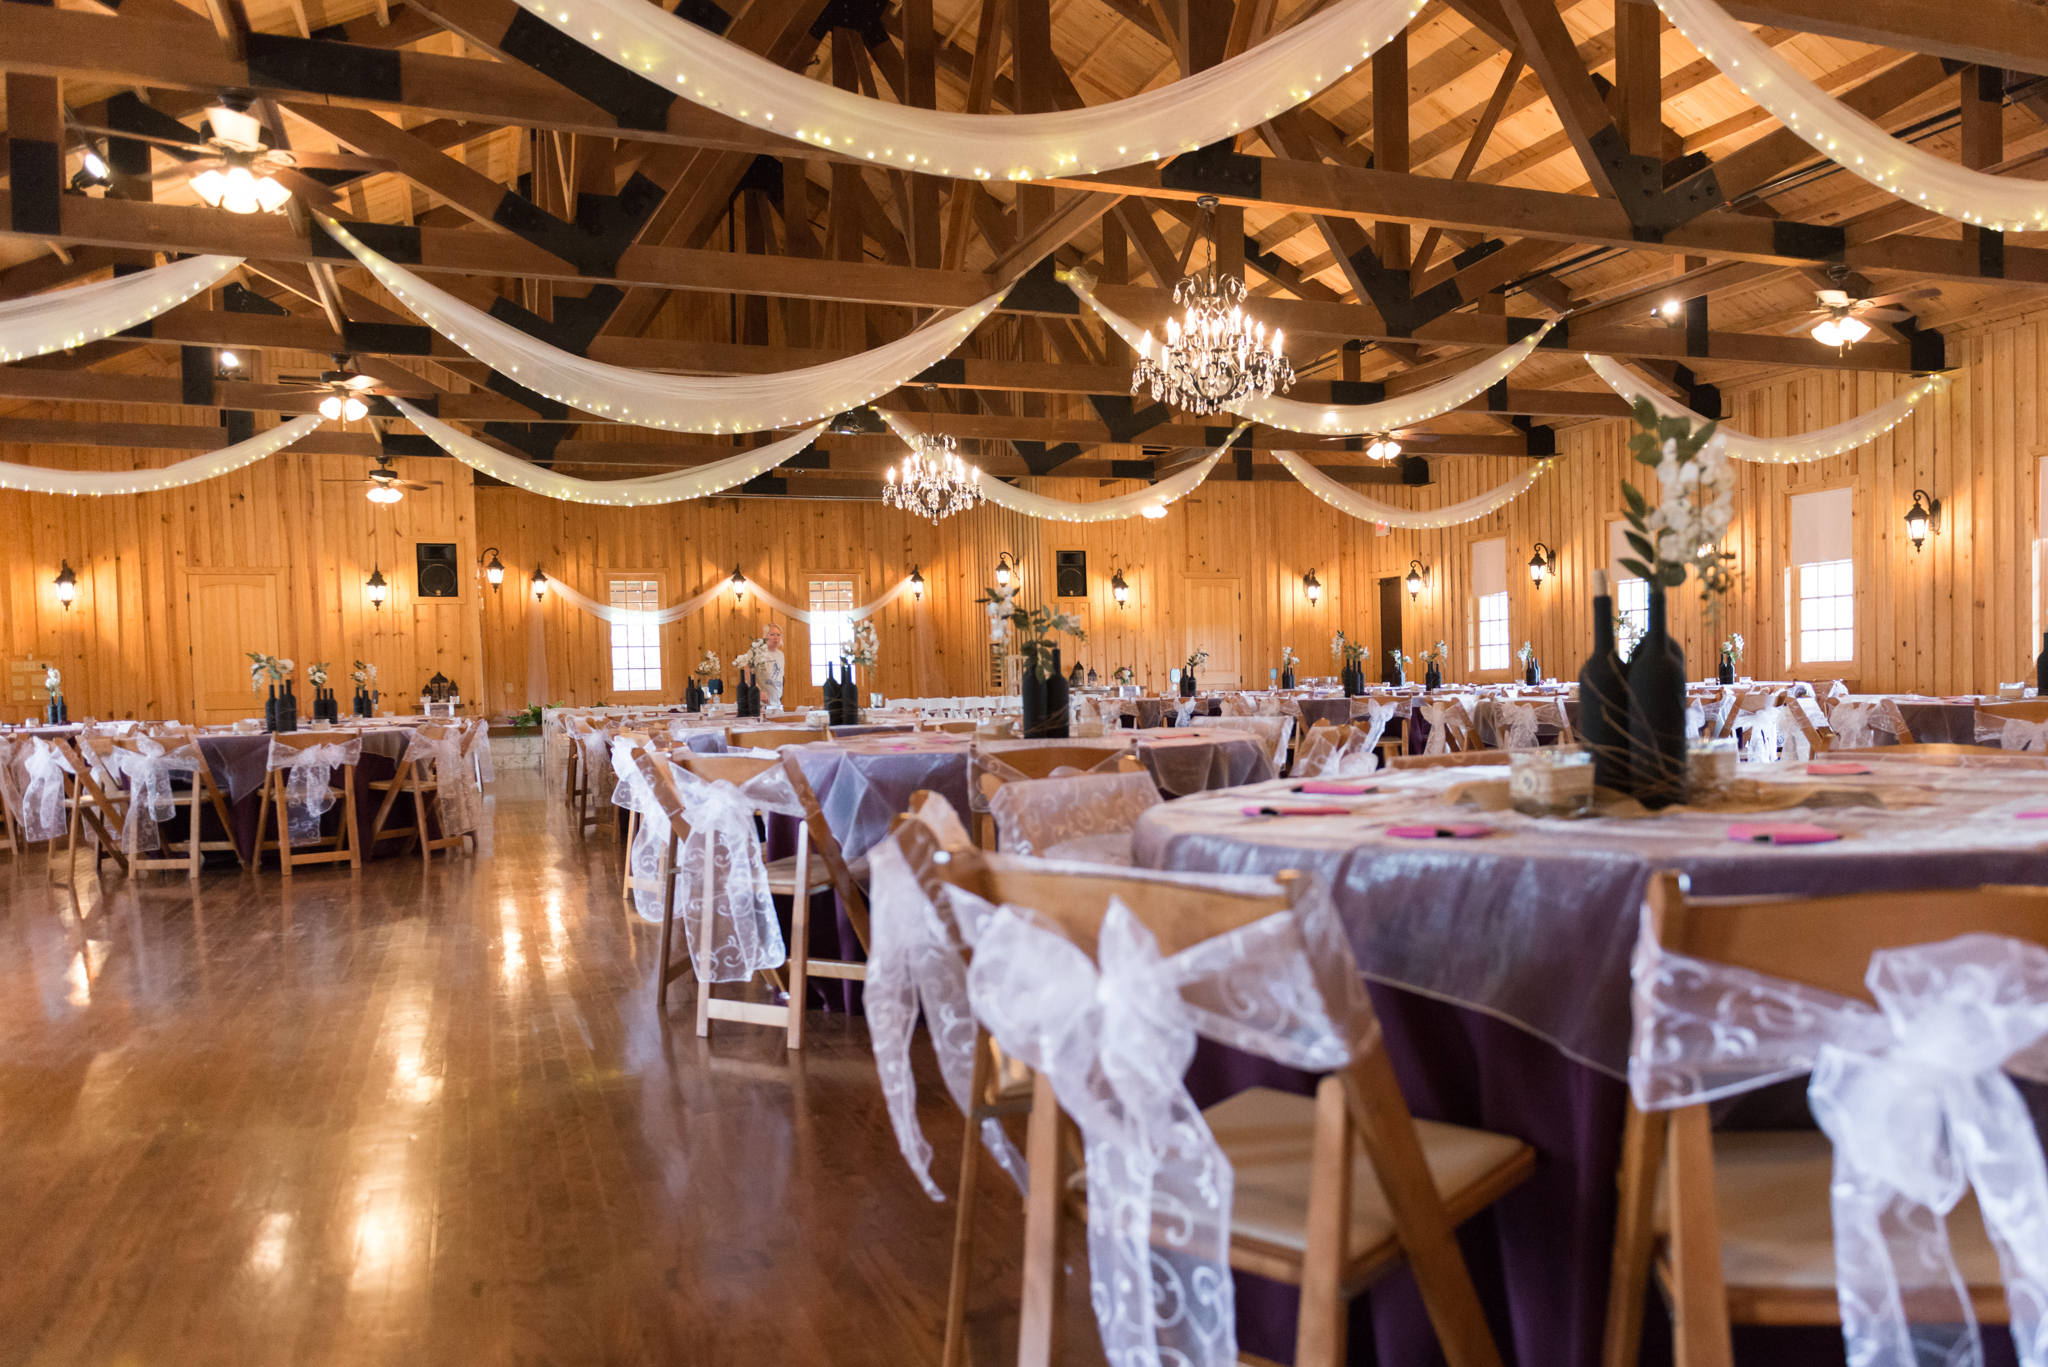 Wood beams and chandeliers equals amazing